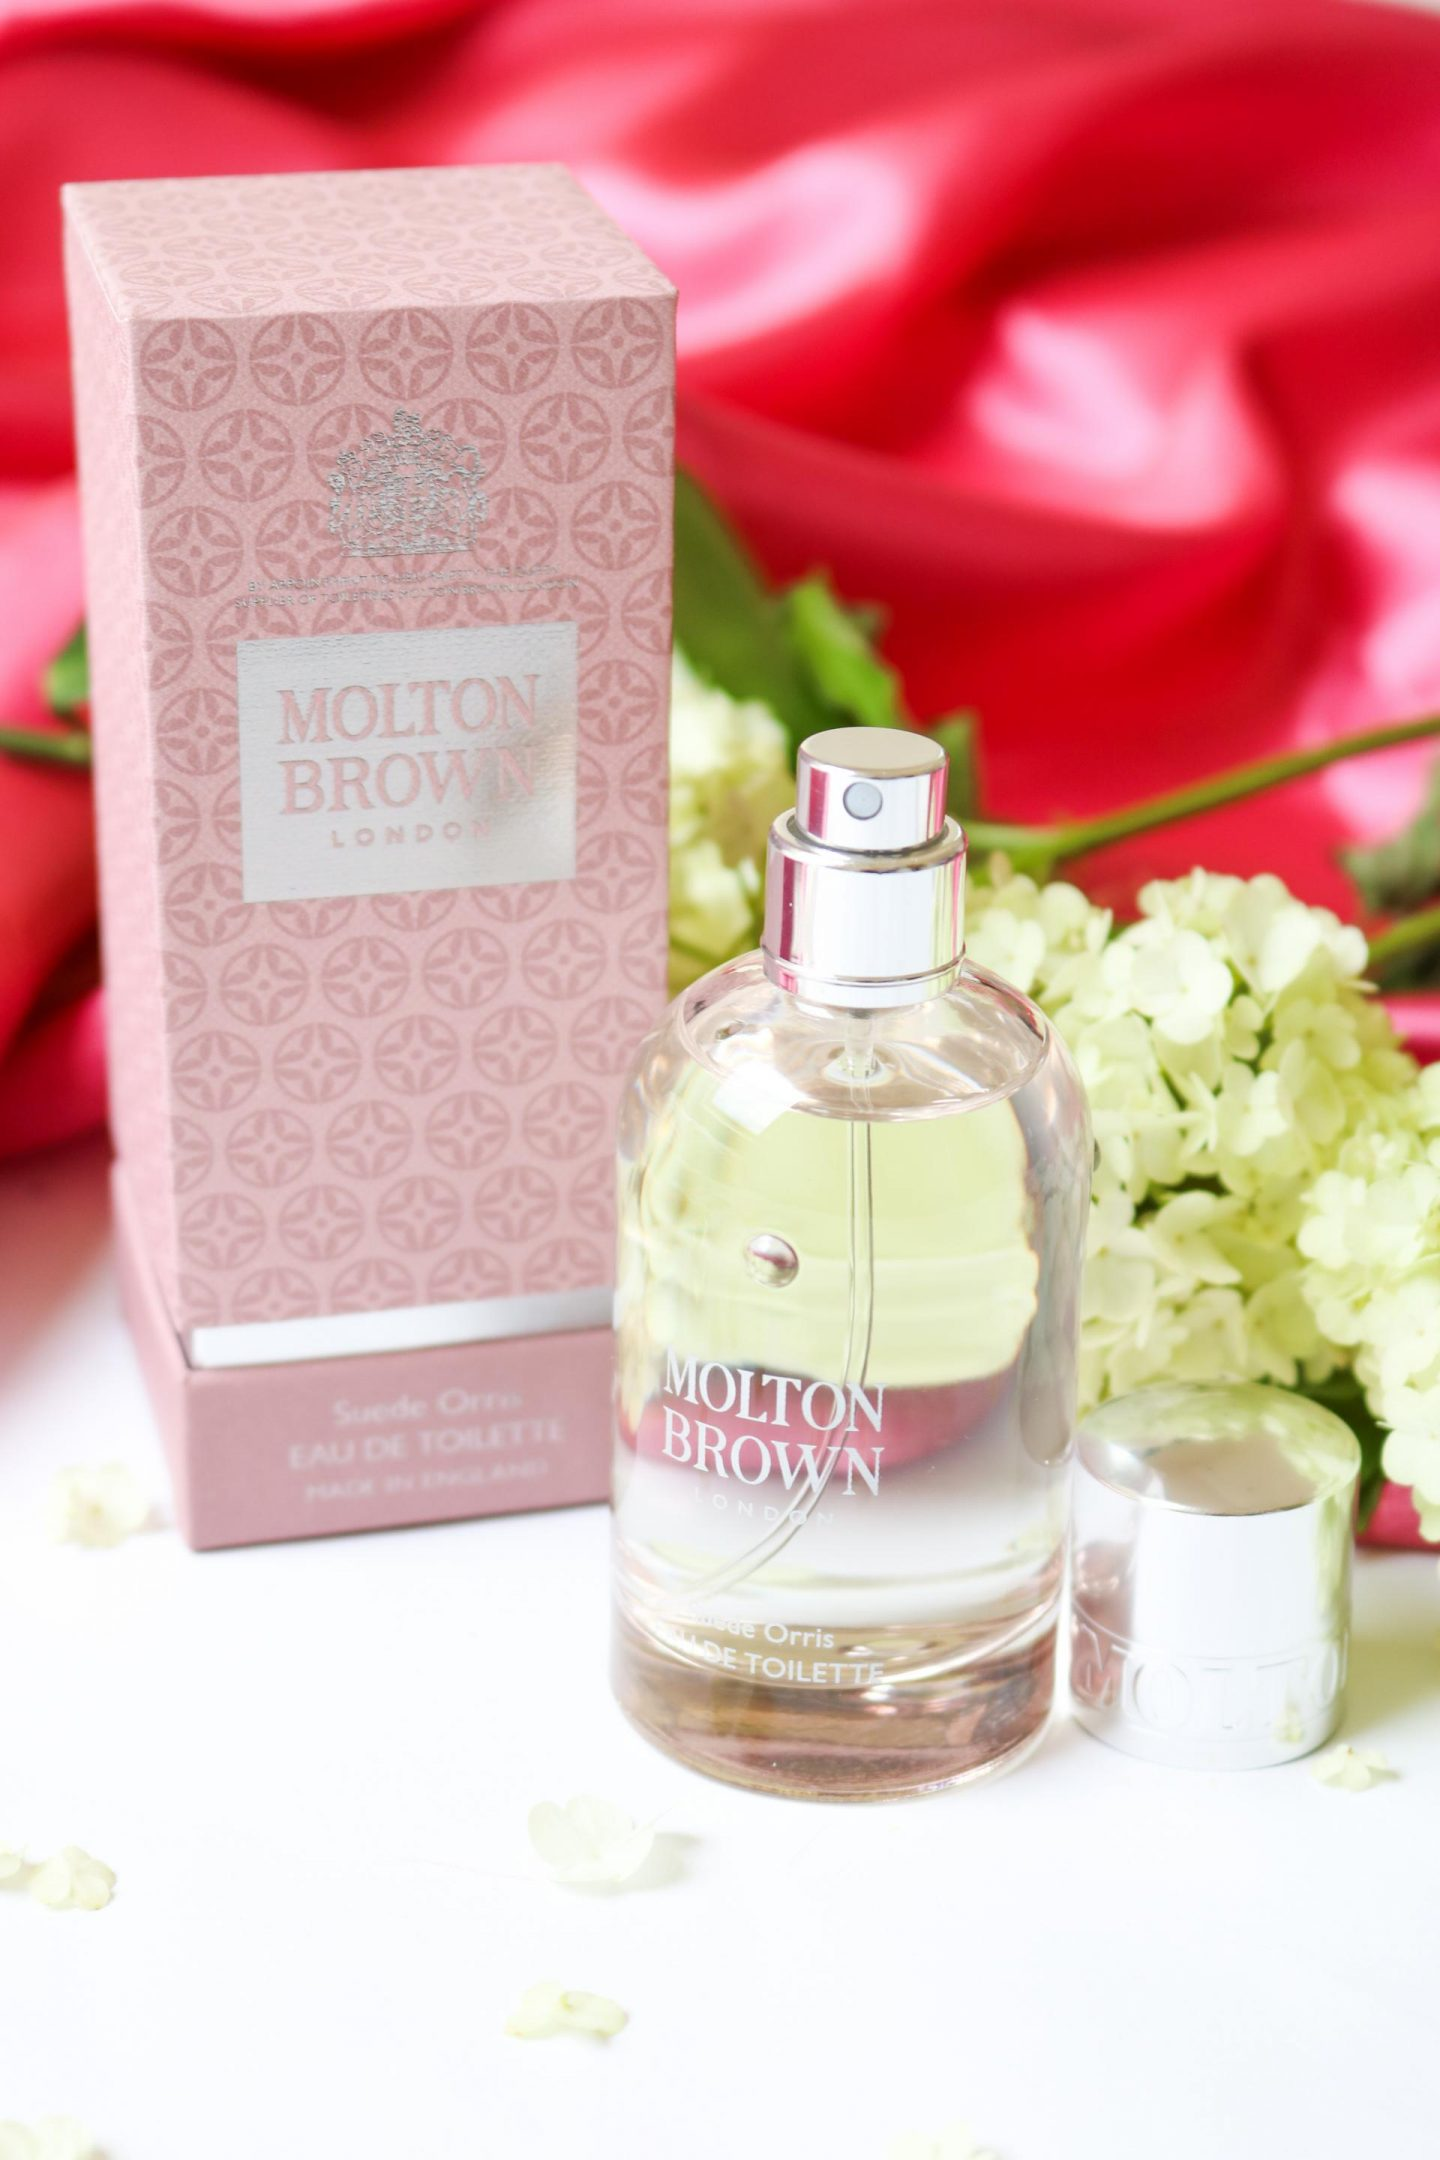 Molton Brown Suede Orris Eau de Toilette